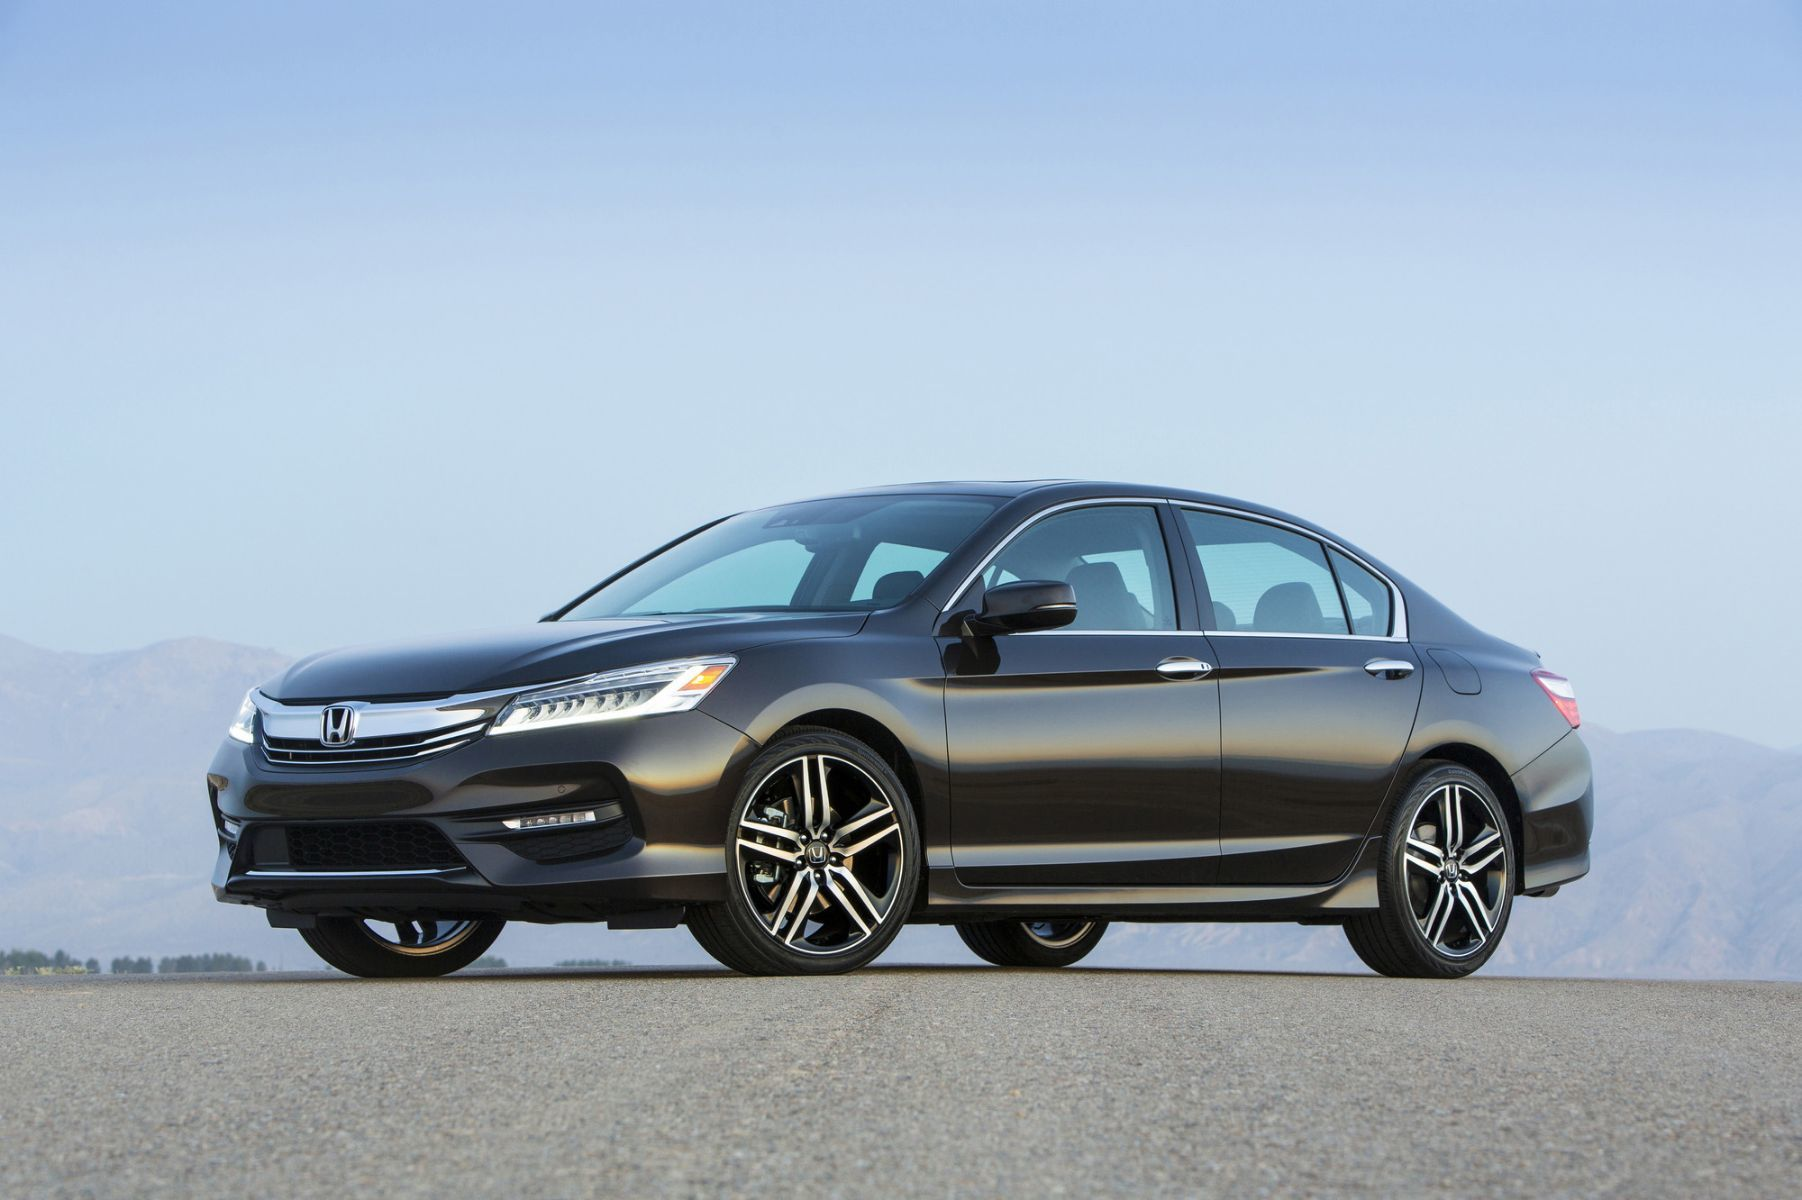 Honda Accord Wins a Record 30th 10 Best Cars Award from Car and Driver